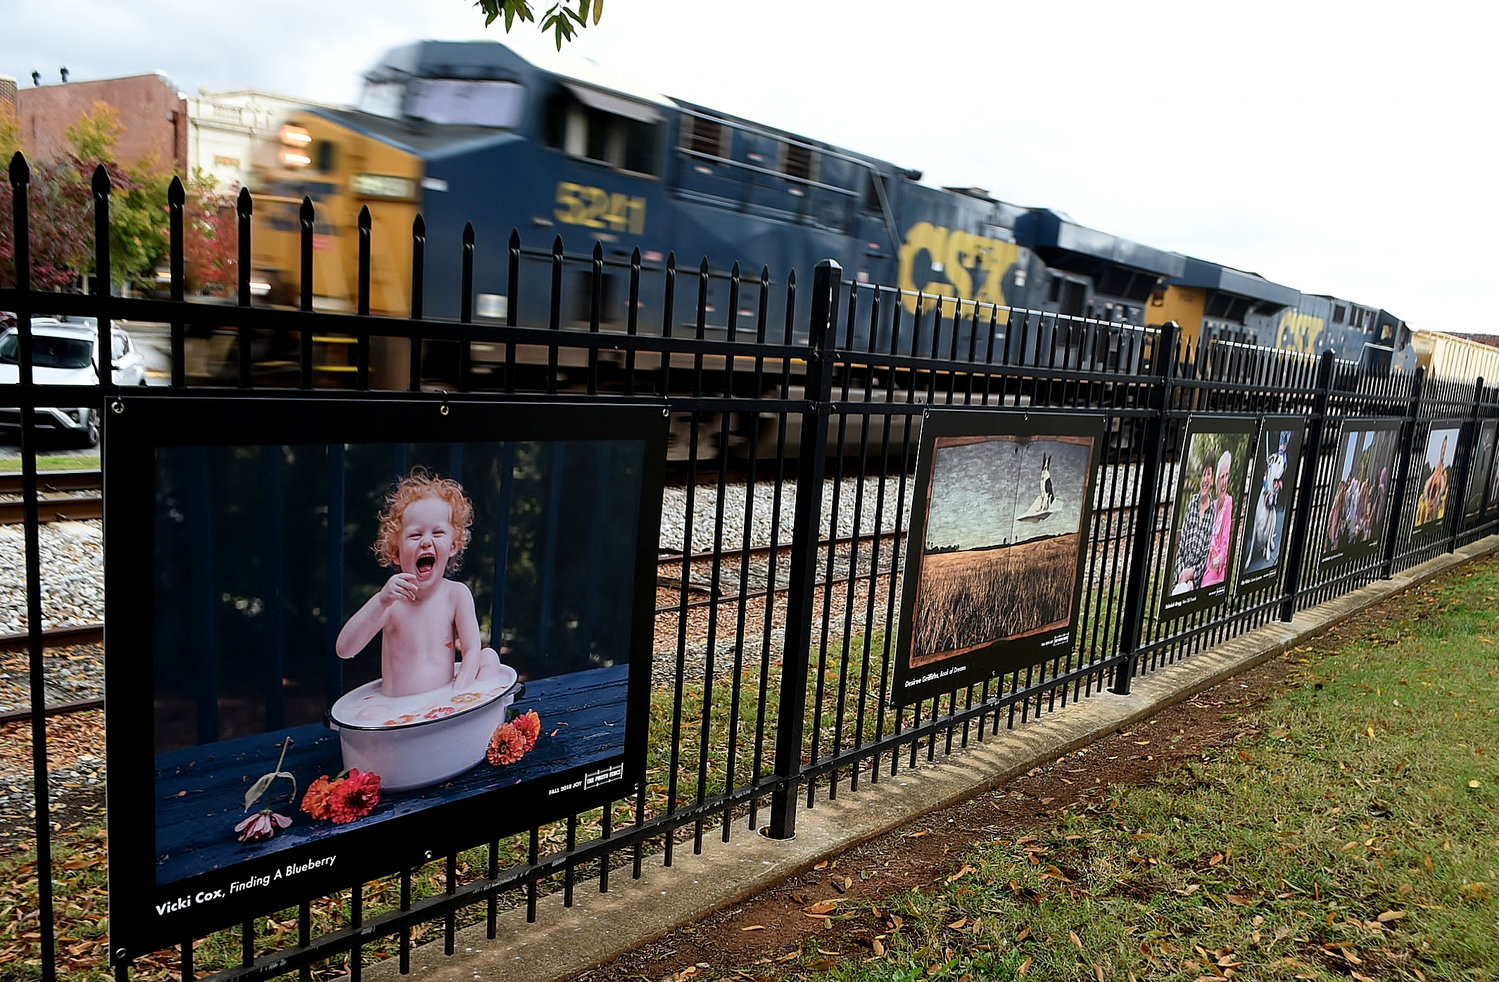 The Photo Fence in downtown Cartersville features images captured by local and regional photographers.